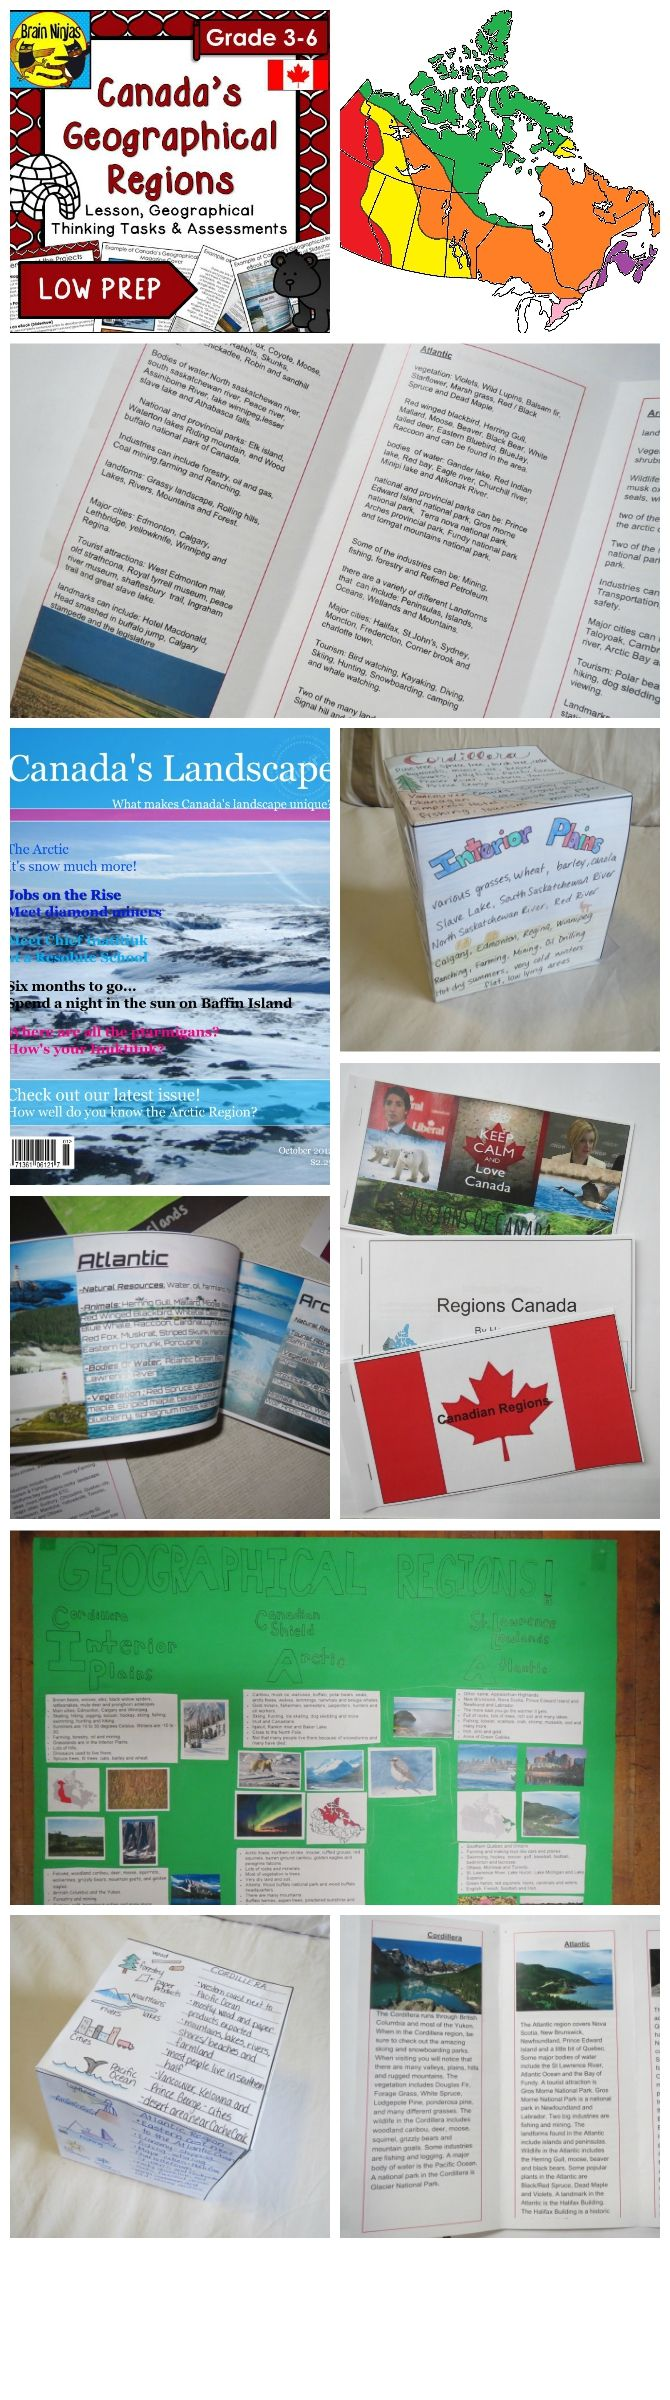 These seven projects are to develop skills on Canada's Geographical Regions.  Comes with a complete lesson plan and assessment tools.